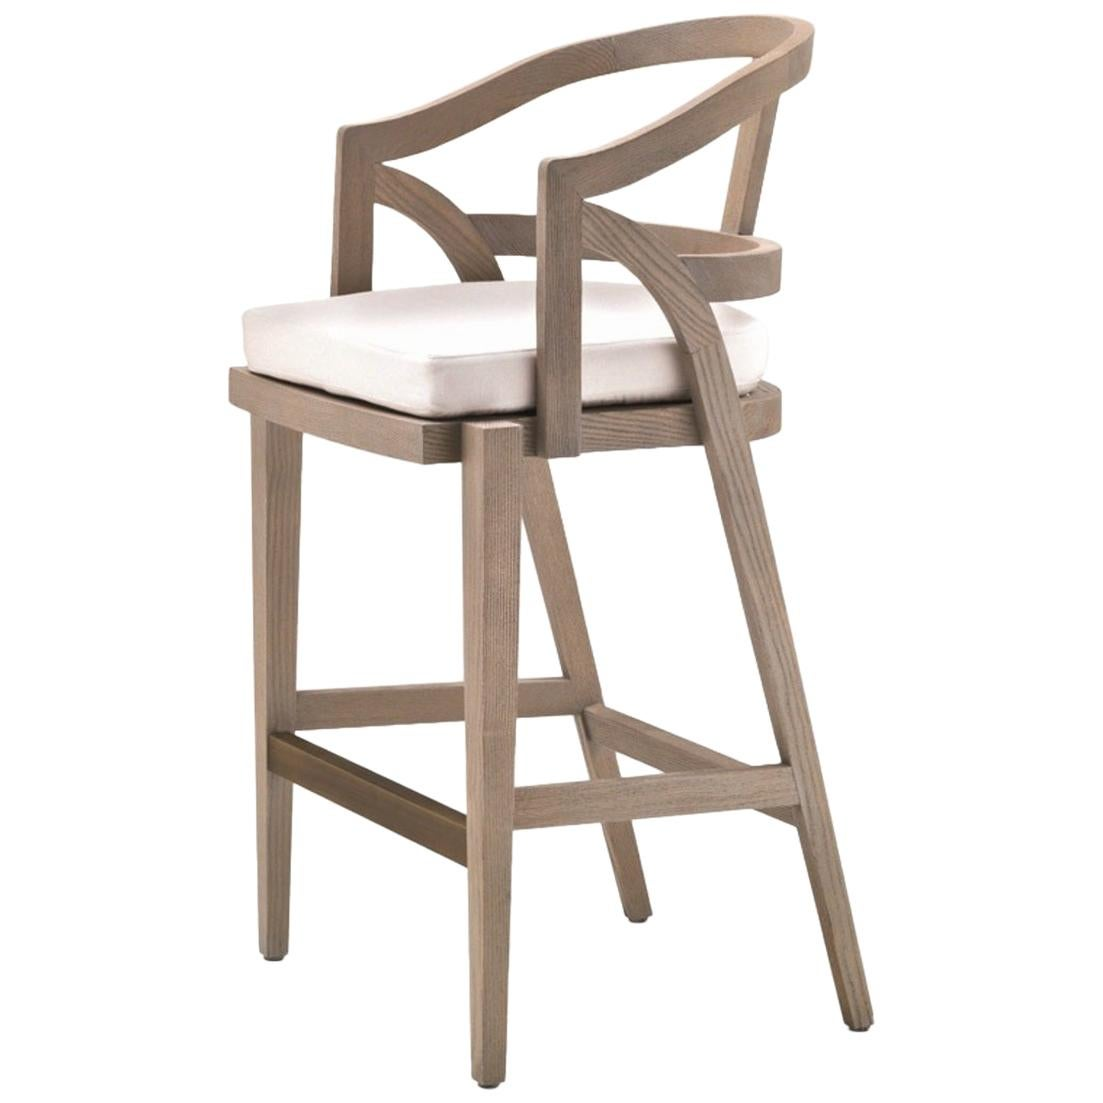 Ruka Outdoor Stool in Solid Sassafras Wood with Fabric and Metal Footrest